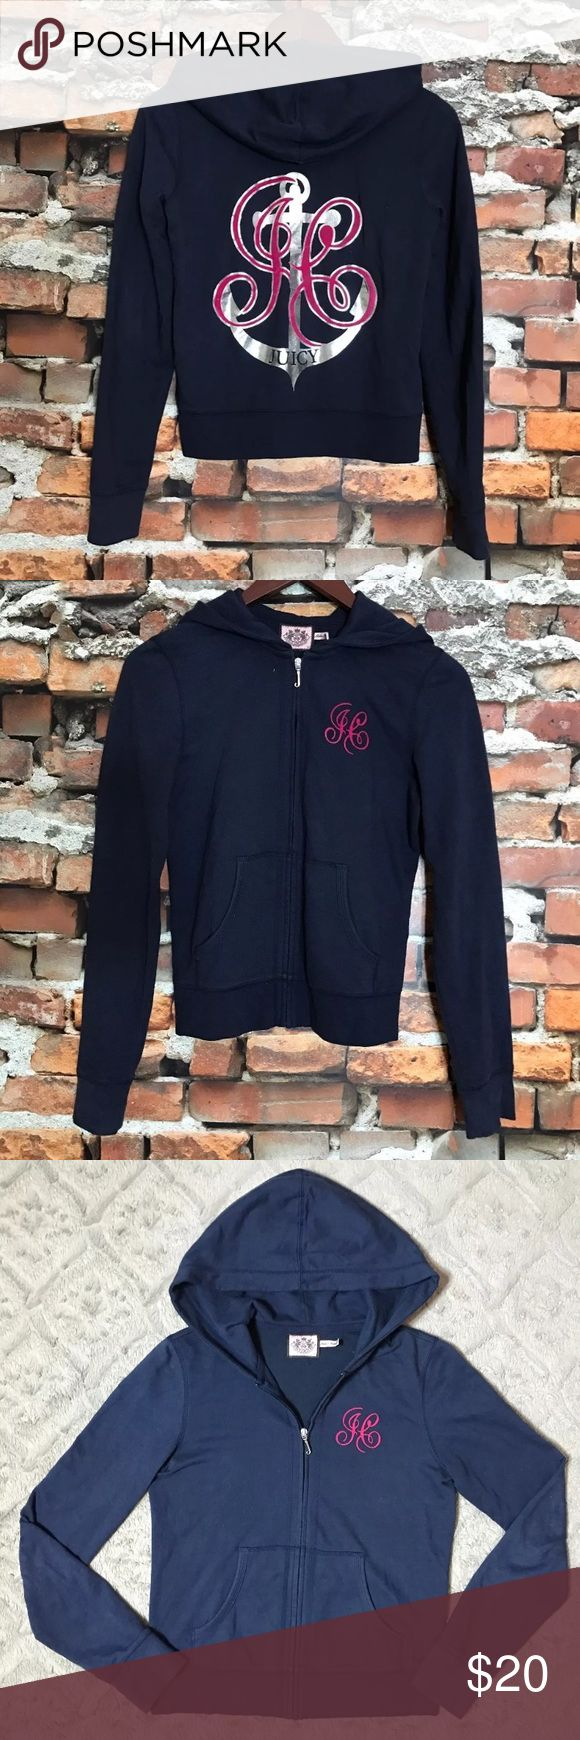 """Juicy Couture Nautical Anchor Velvet Zip Hoodie S Juicy Couture Navy Blue Nautical Anchor Pink Velvet Monogram Zip Up Hoodie Small  *Great Used Condition!  Measurements: 32"""" Bust 21"""" Length Juicy Couture Sweaters"""